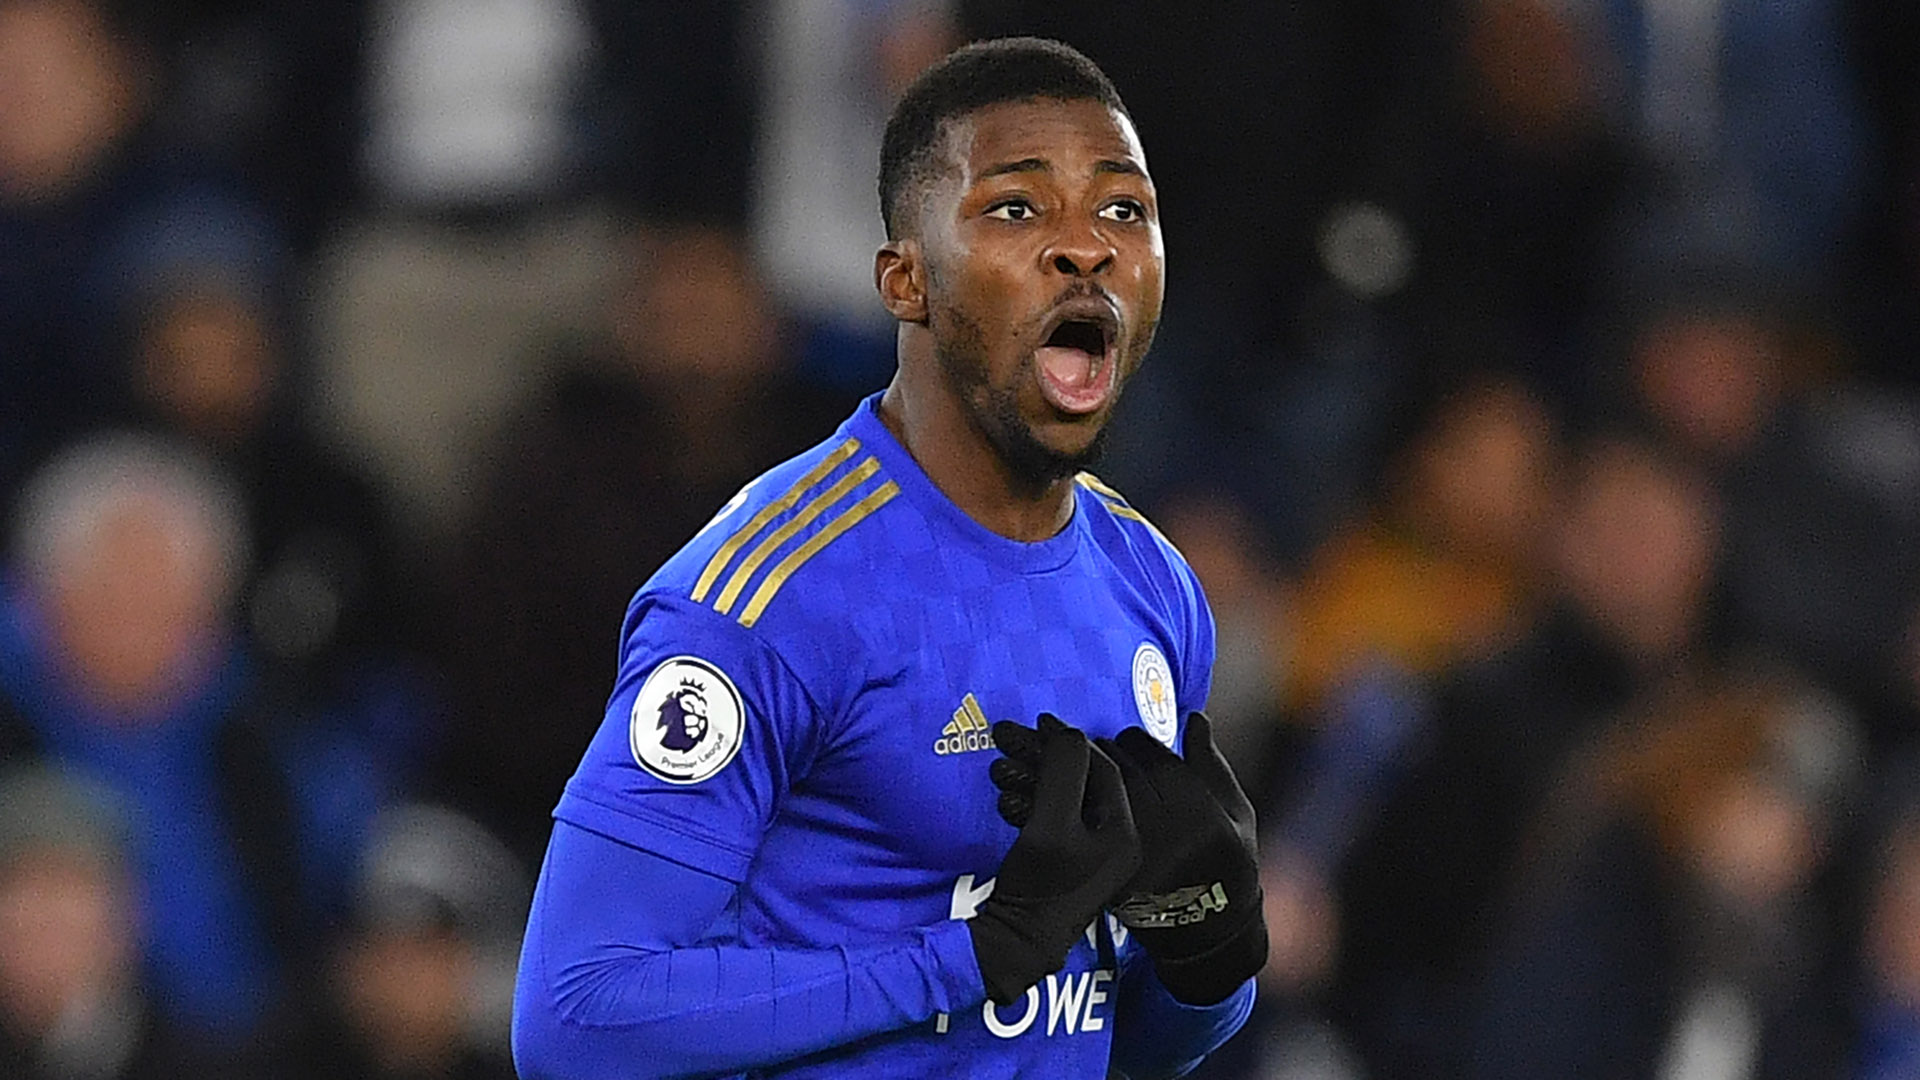 Iheanacho tasks Leicester City to 'fight until the end' after Everton loss